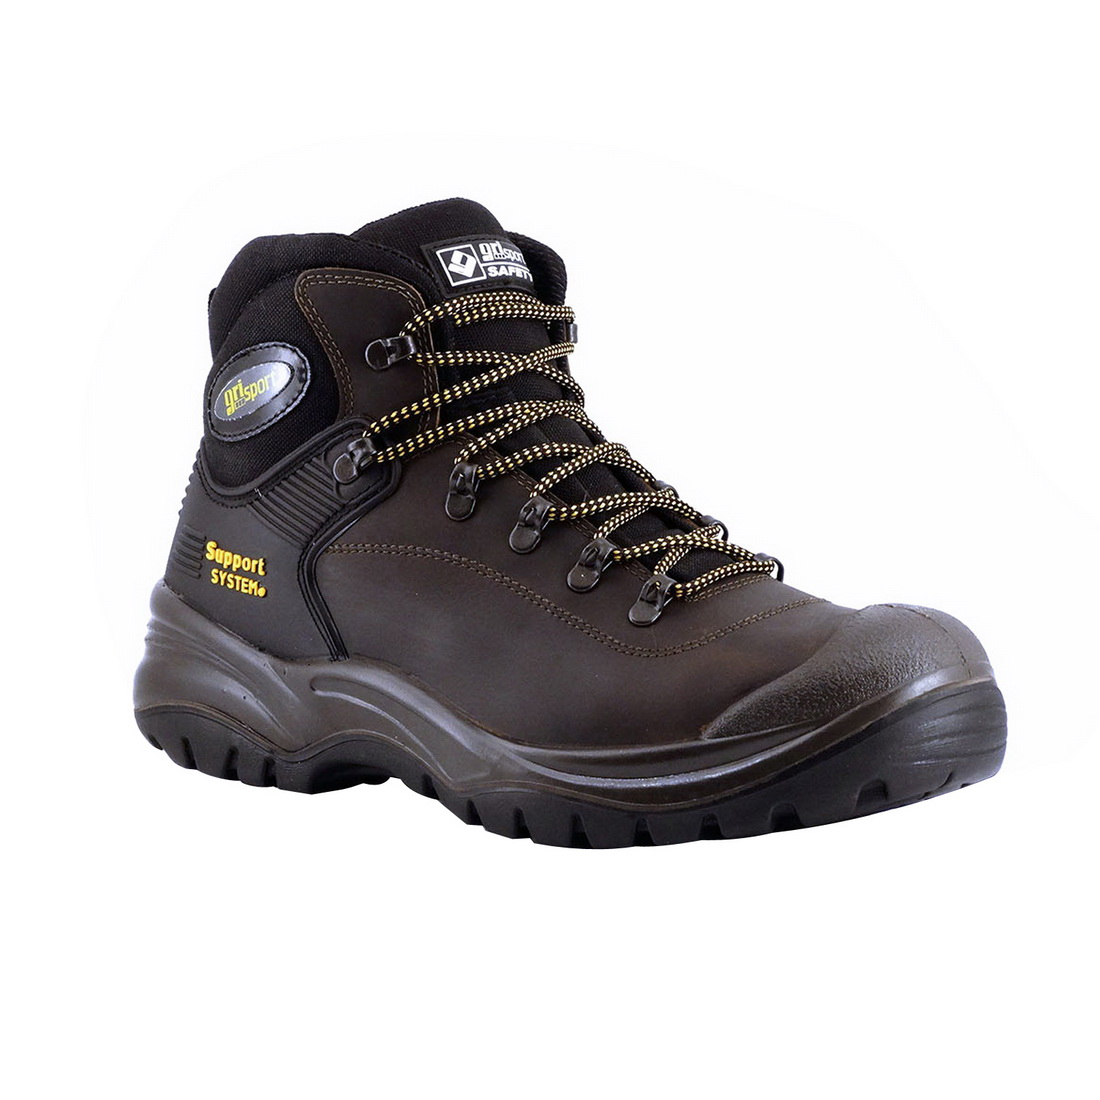 Contractor Safety Boot Size 11 Brown